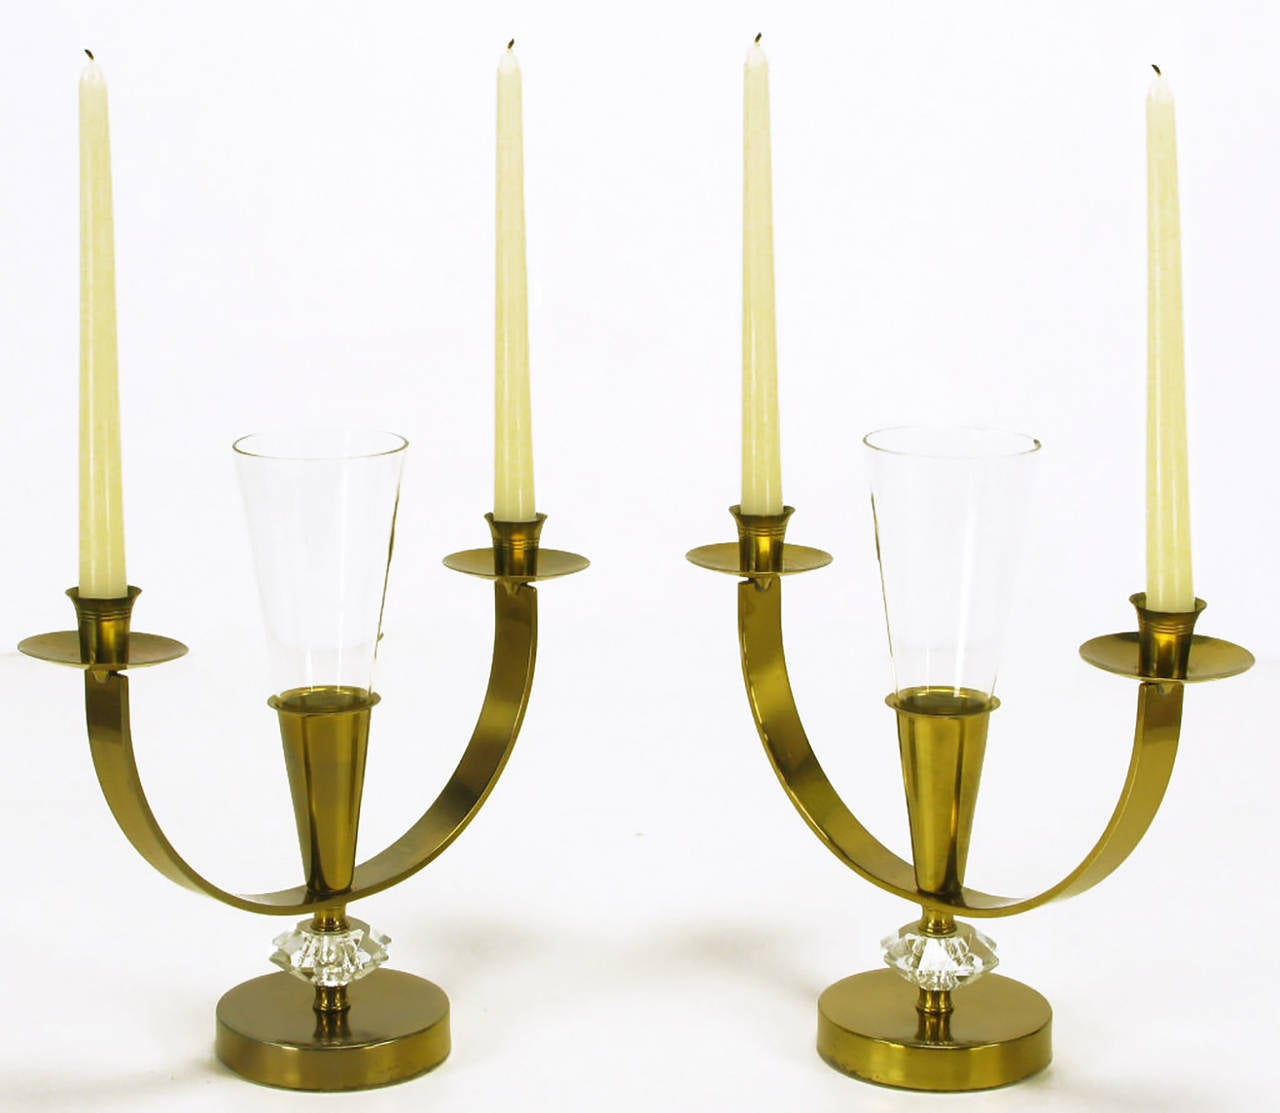 Pair of patinated brass double arm candelabra with cut crystal spacers and leaded crystal fluted center petite vase. Bobeche and striated candle cups are similar to Tommi Parzinger designs for Dorlyn.